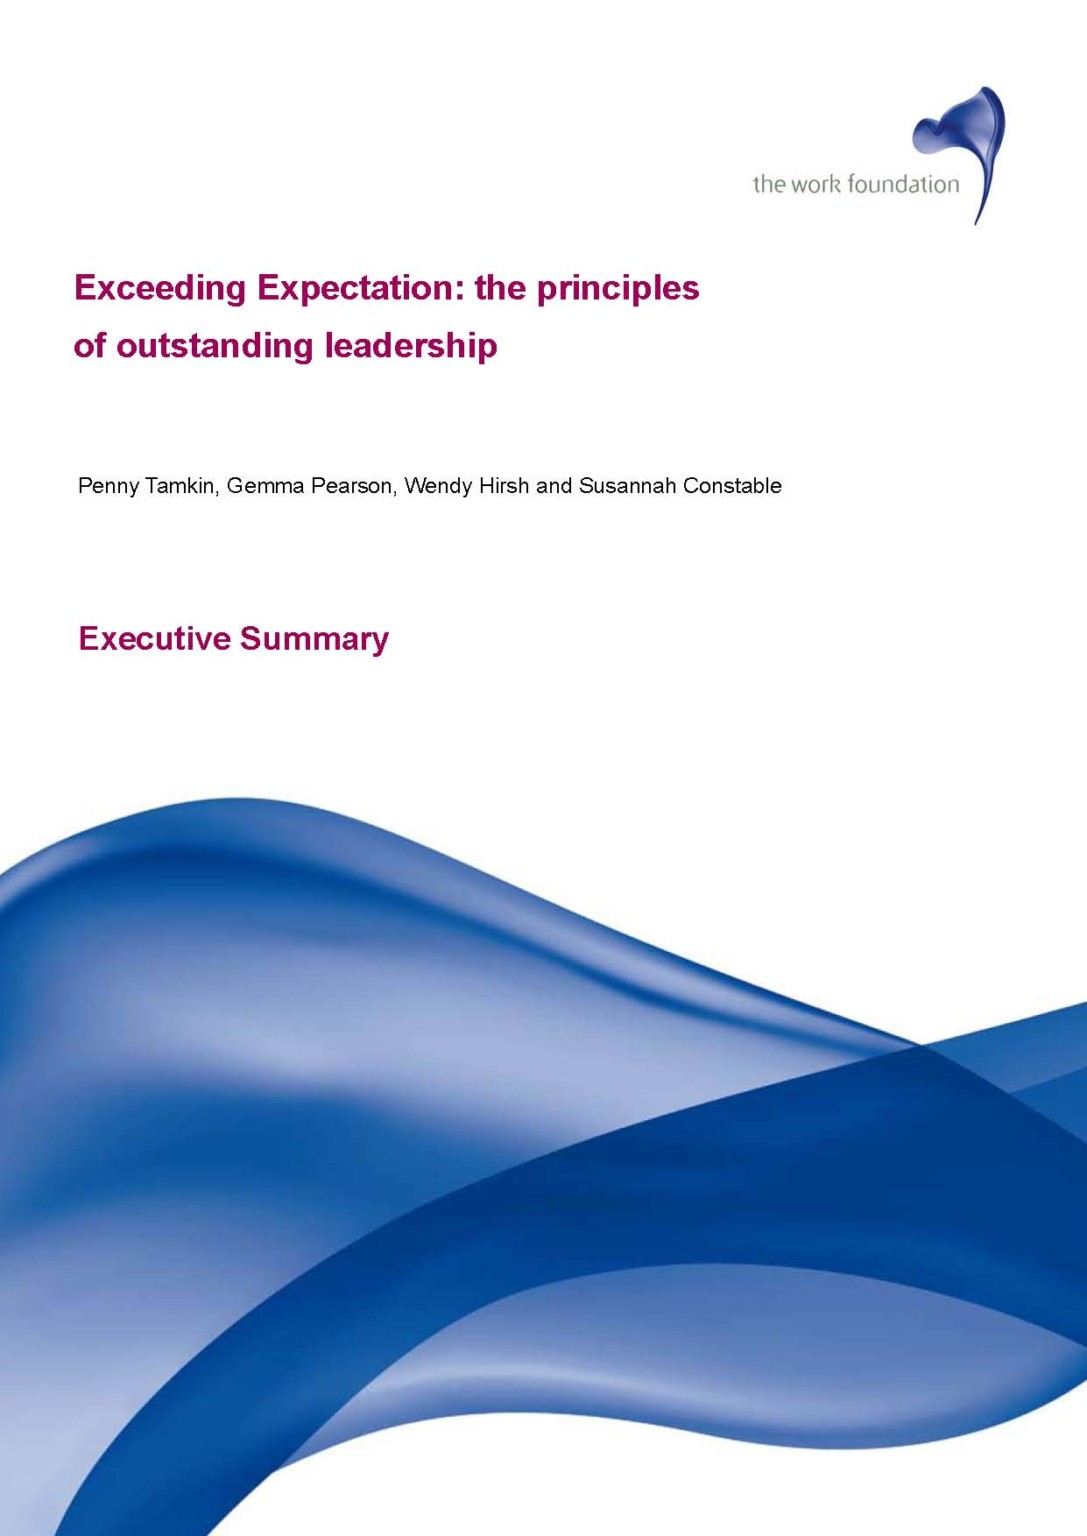 Exceeding expectations: the principles of outstanding